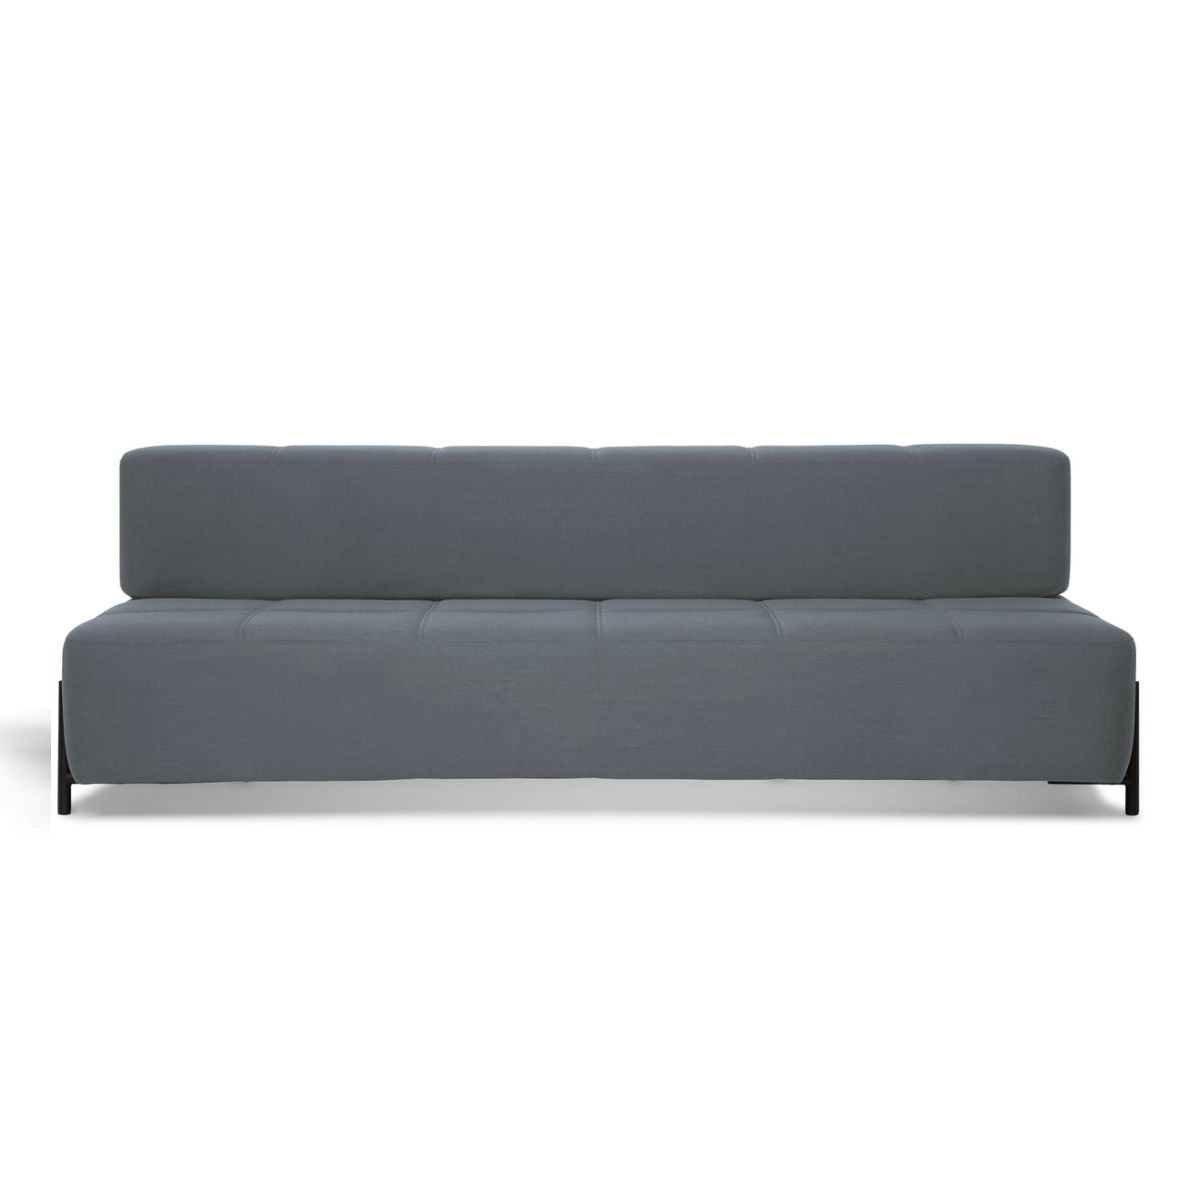 Northern Daybe with armrests, brusvik 05 grey